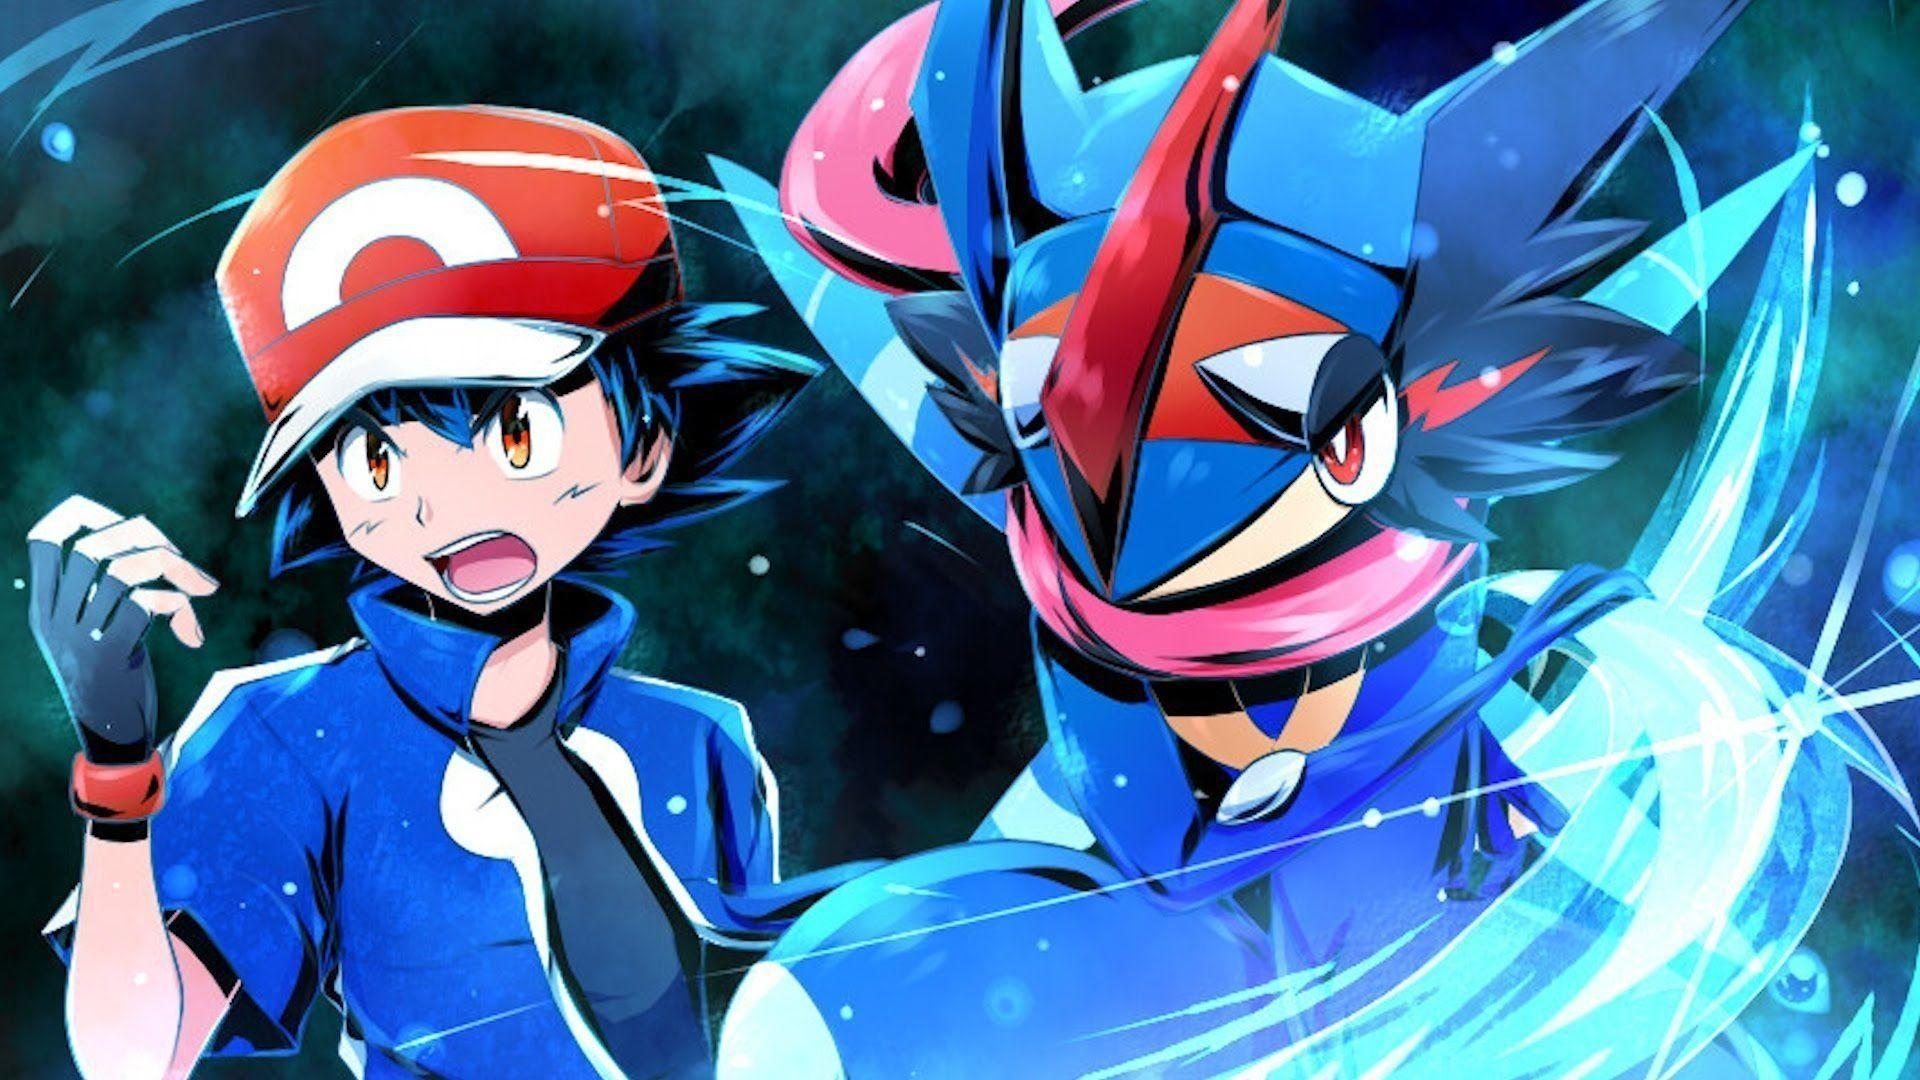 10 New Ash Greninja Wallpaper Hd FULL HD 1080p For PC Desktop